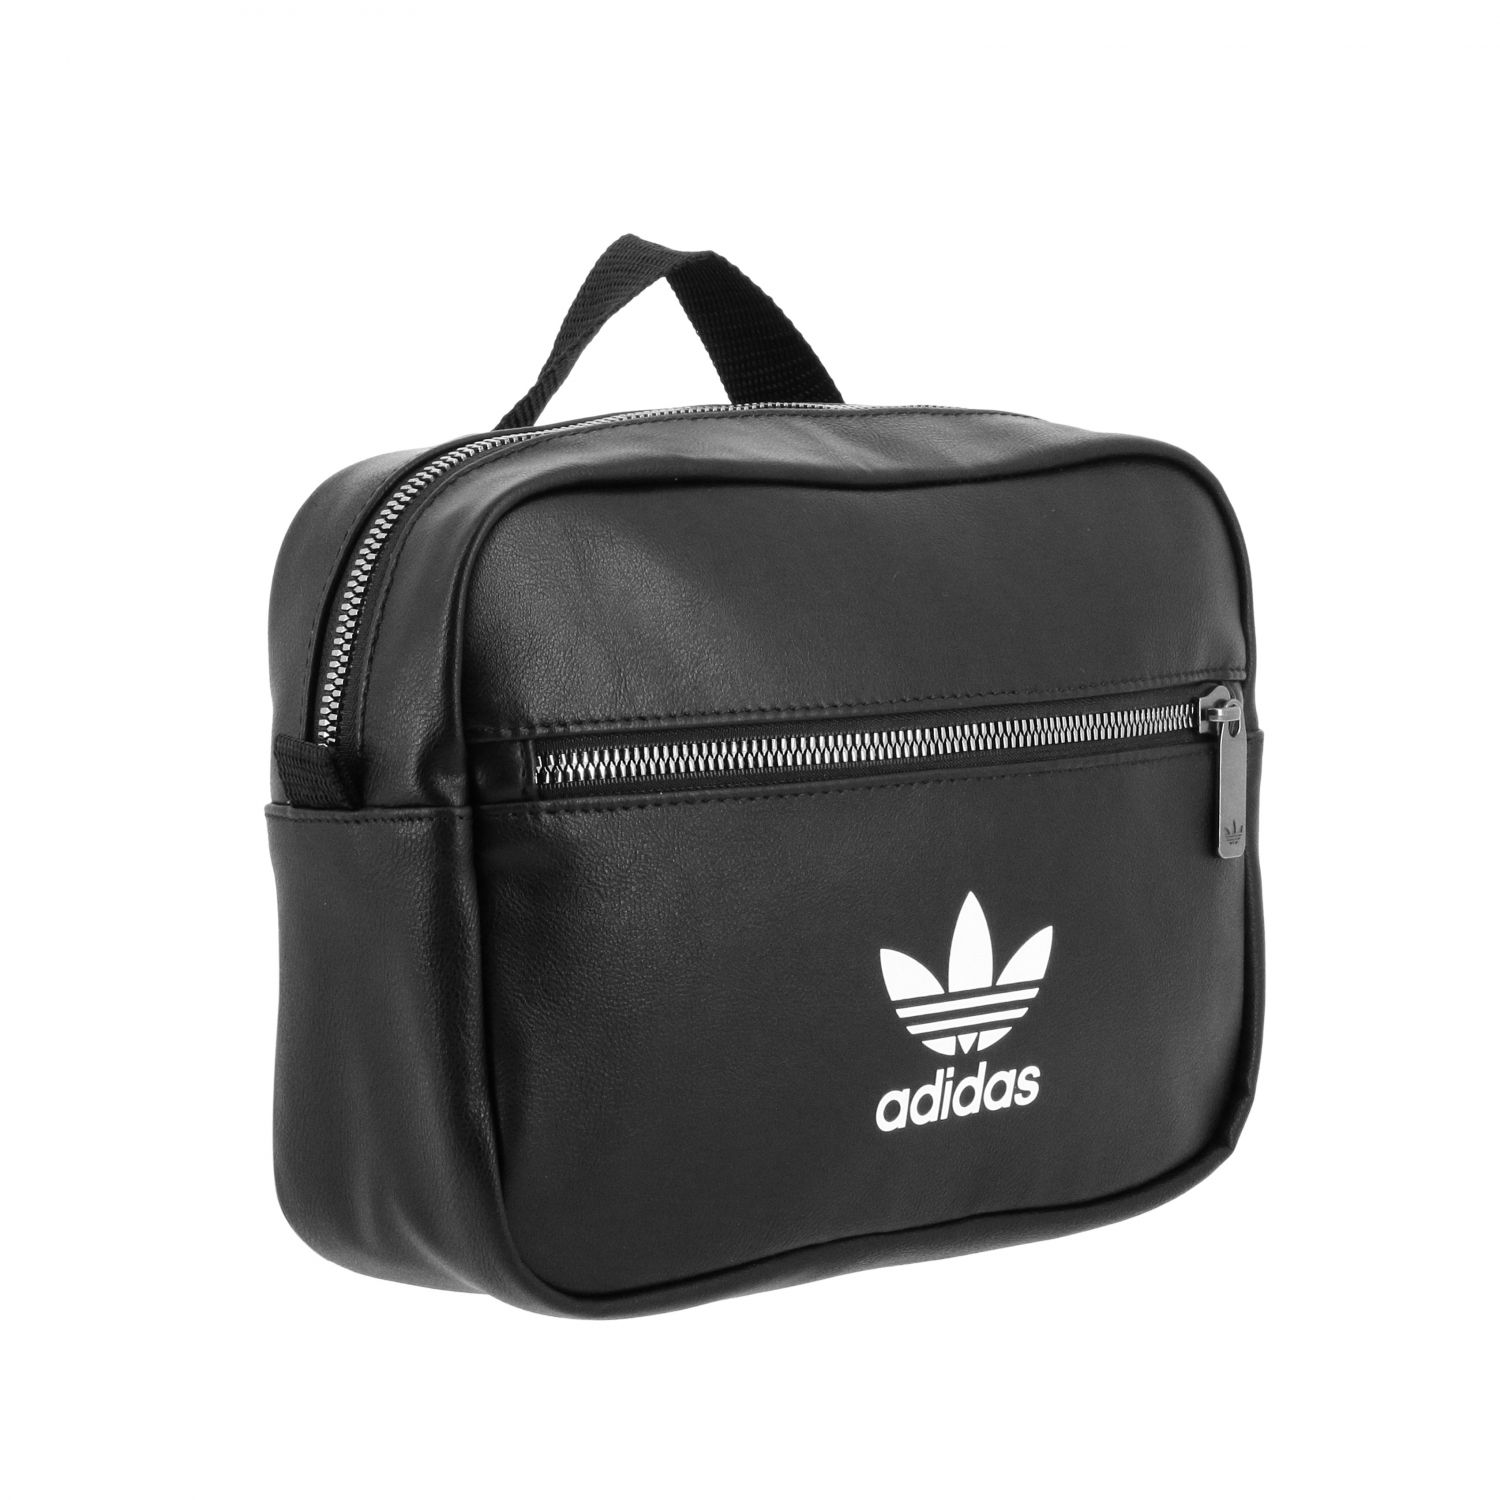 Bolso mini Adidas Originals: Bolso mini niños Adidas Originals negro 3